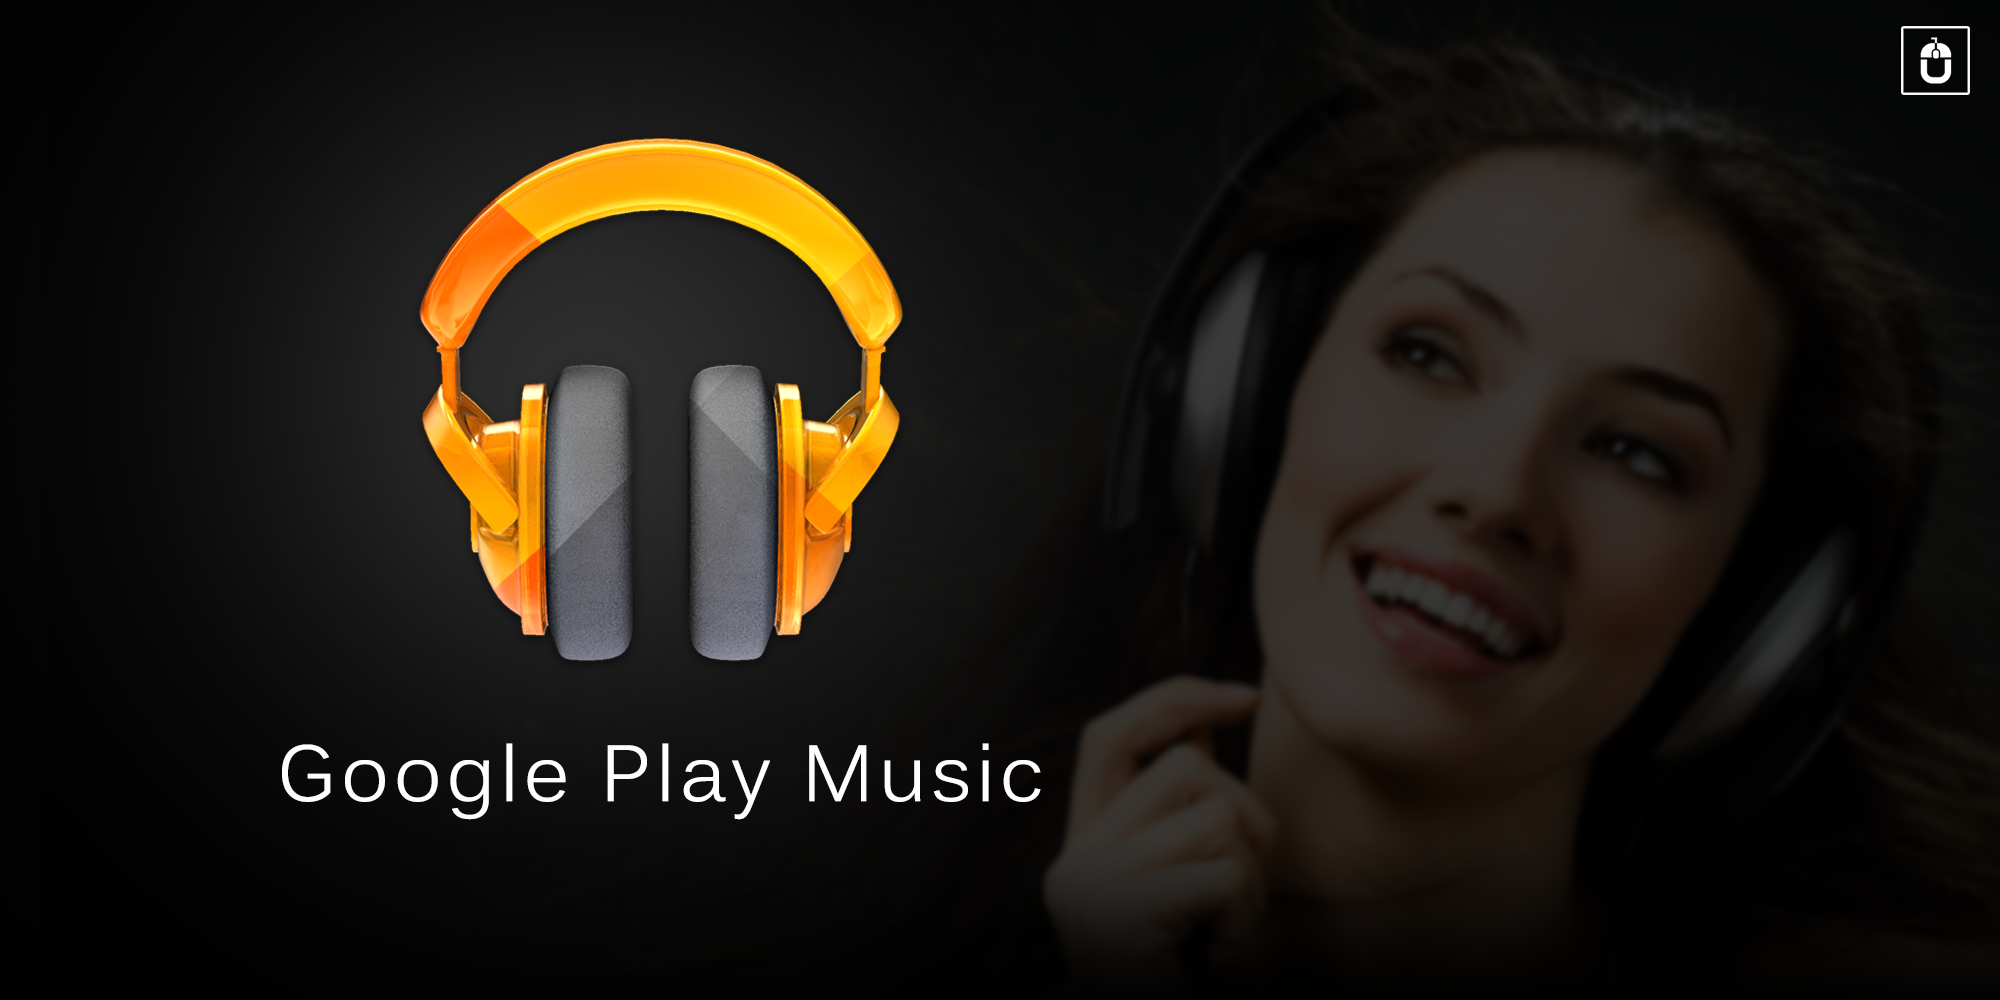 How To Get Google Play Music On Iphone